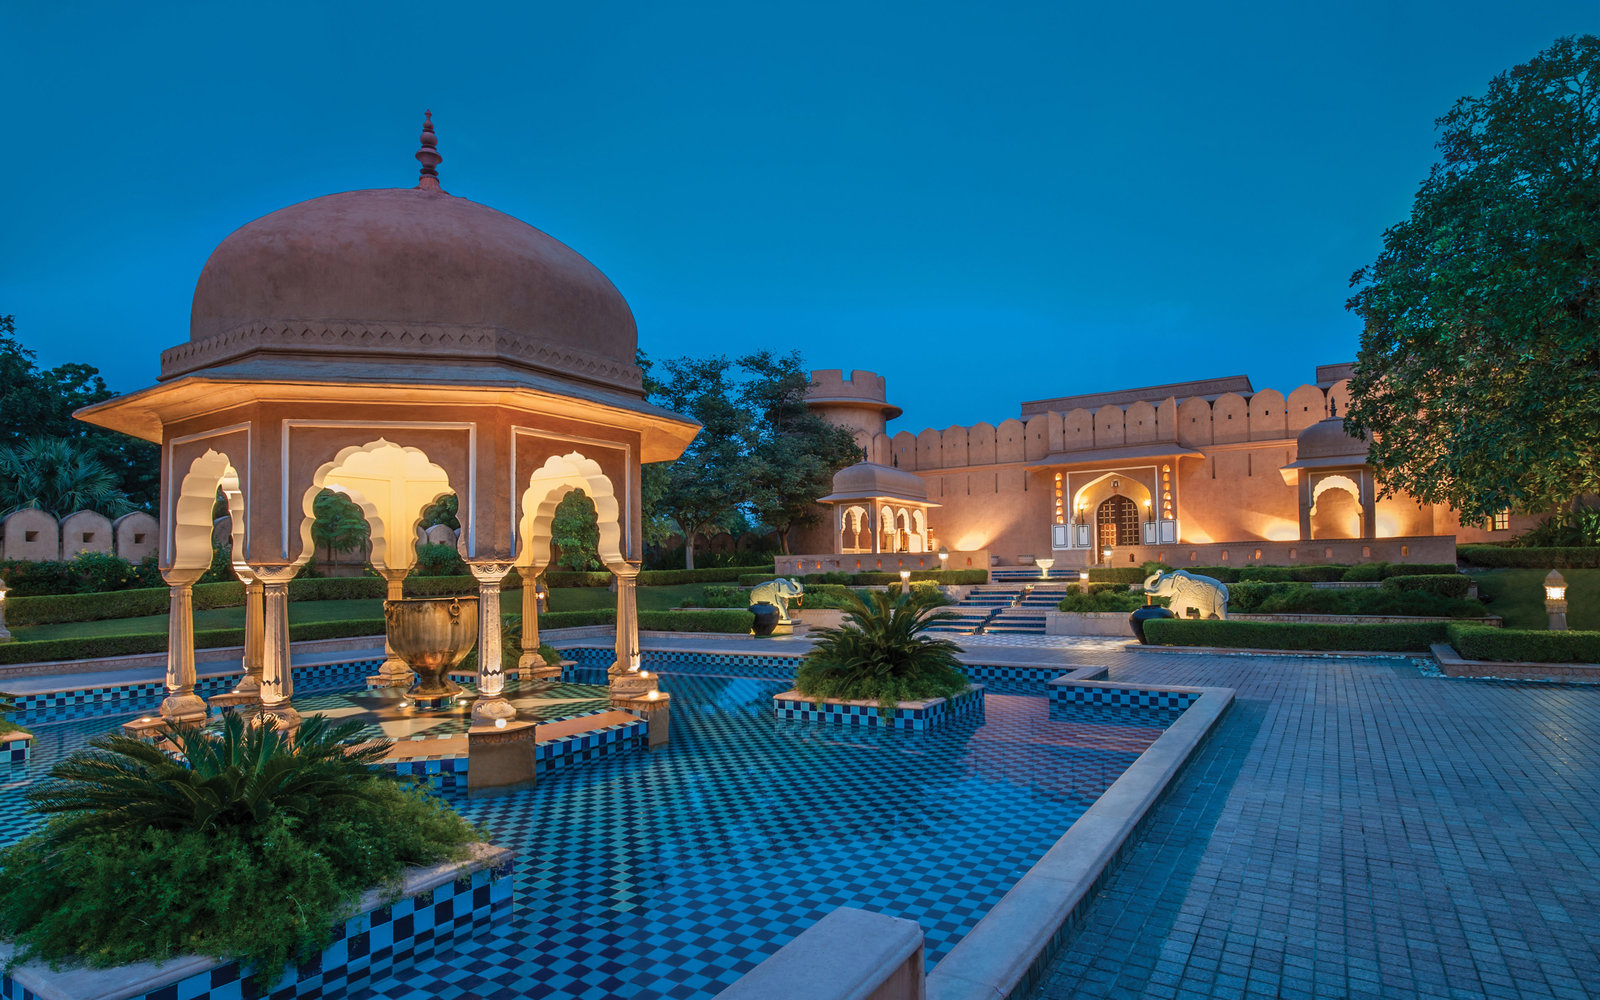 No. 7: The Oberoi Rajvilas, Jaipur, India